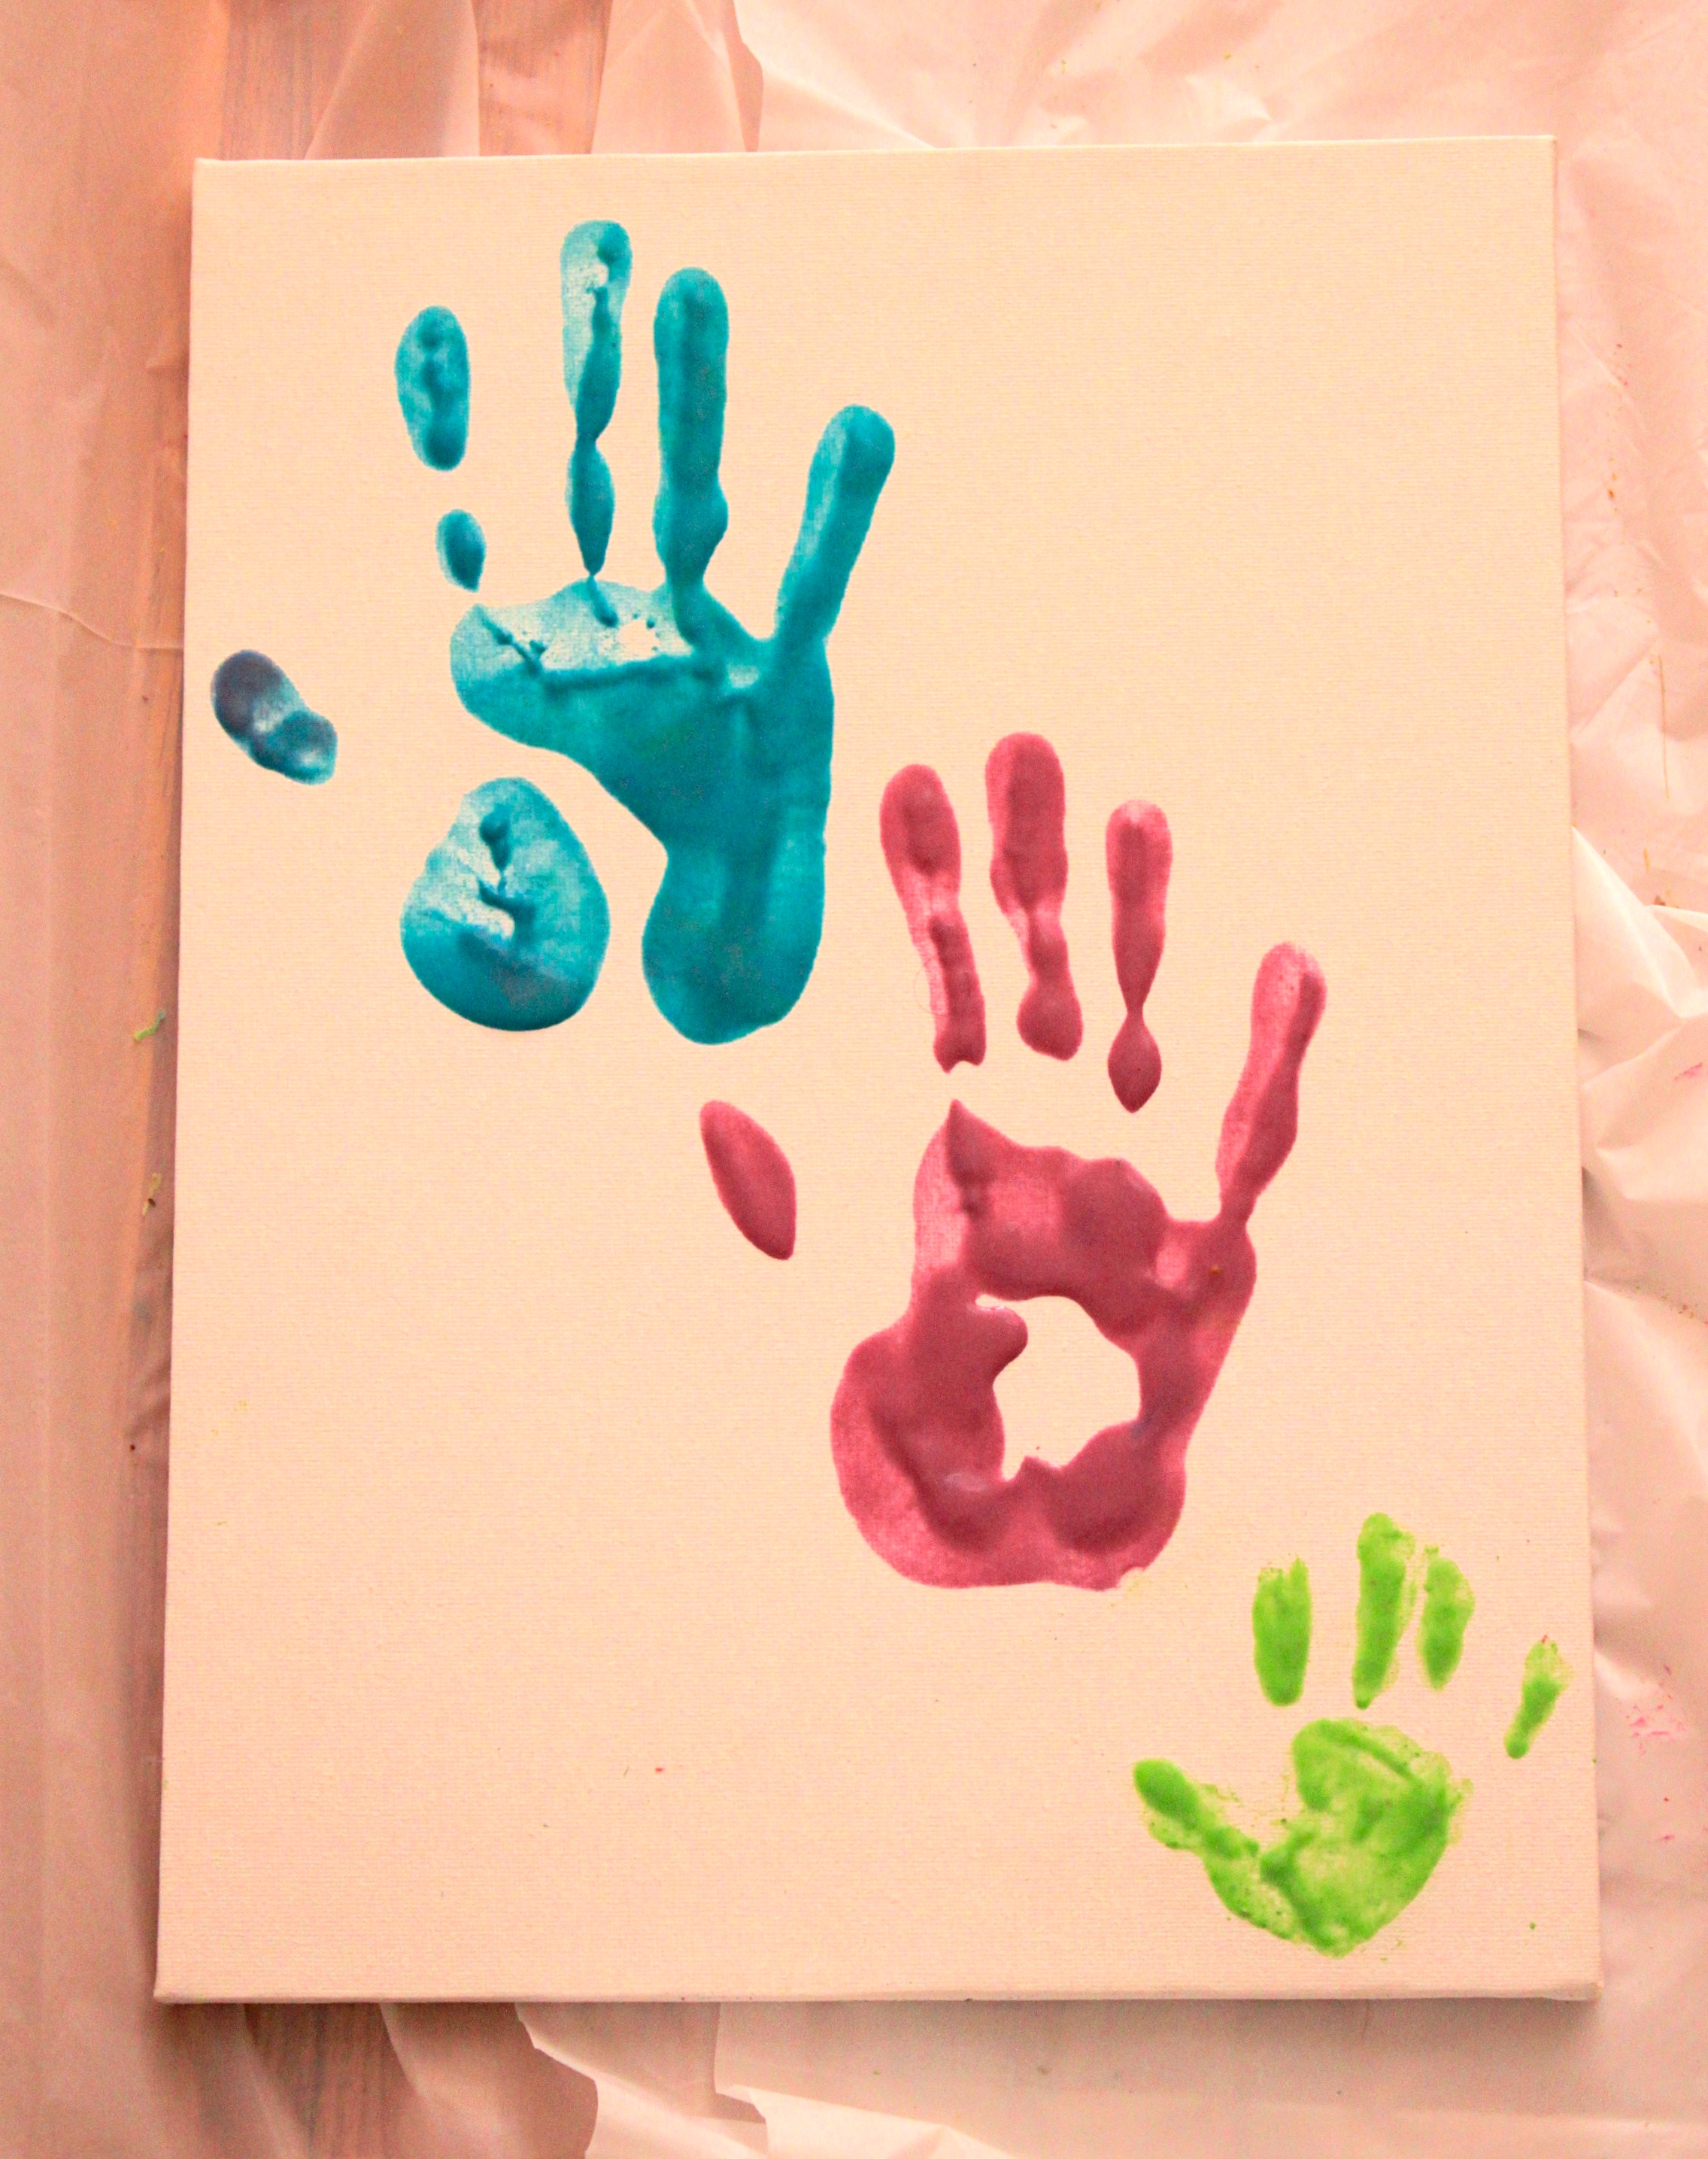 DIY: Homemade Edible Finger Paint